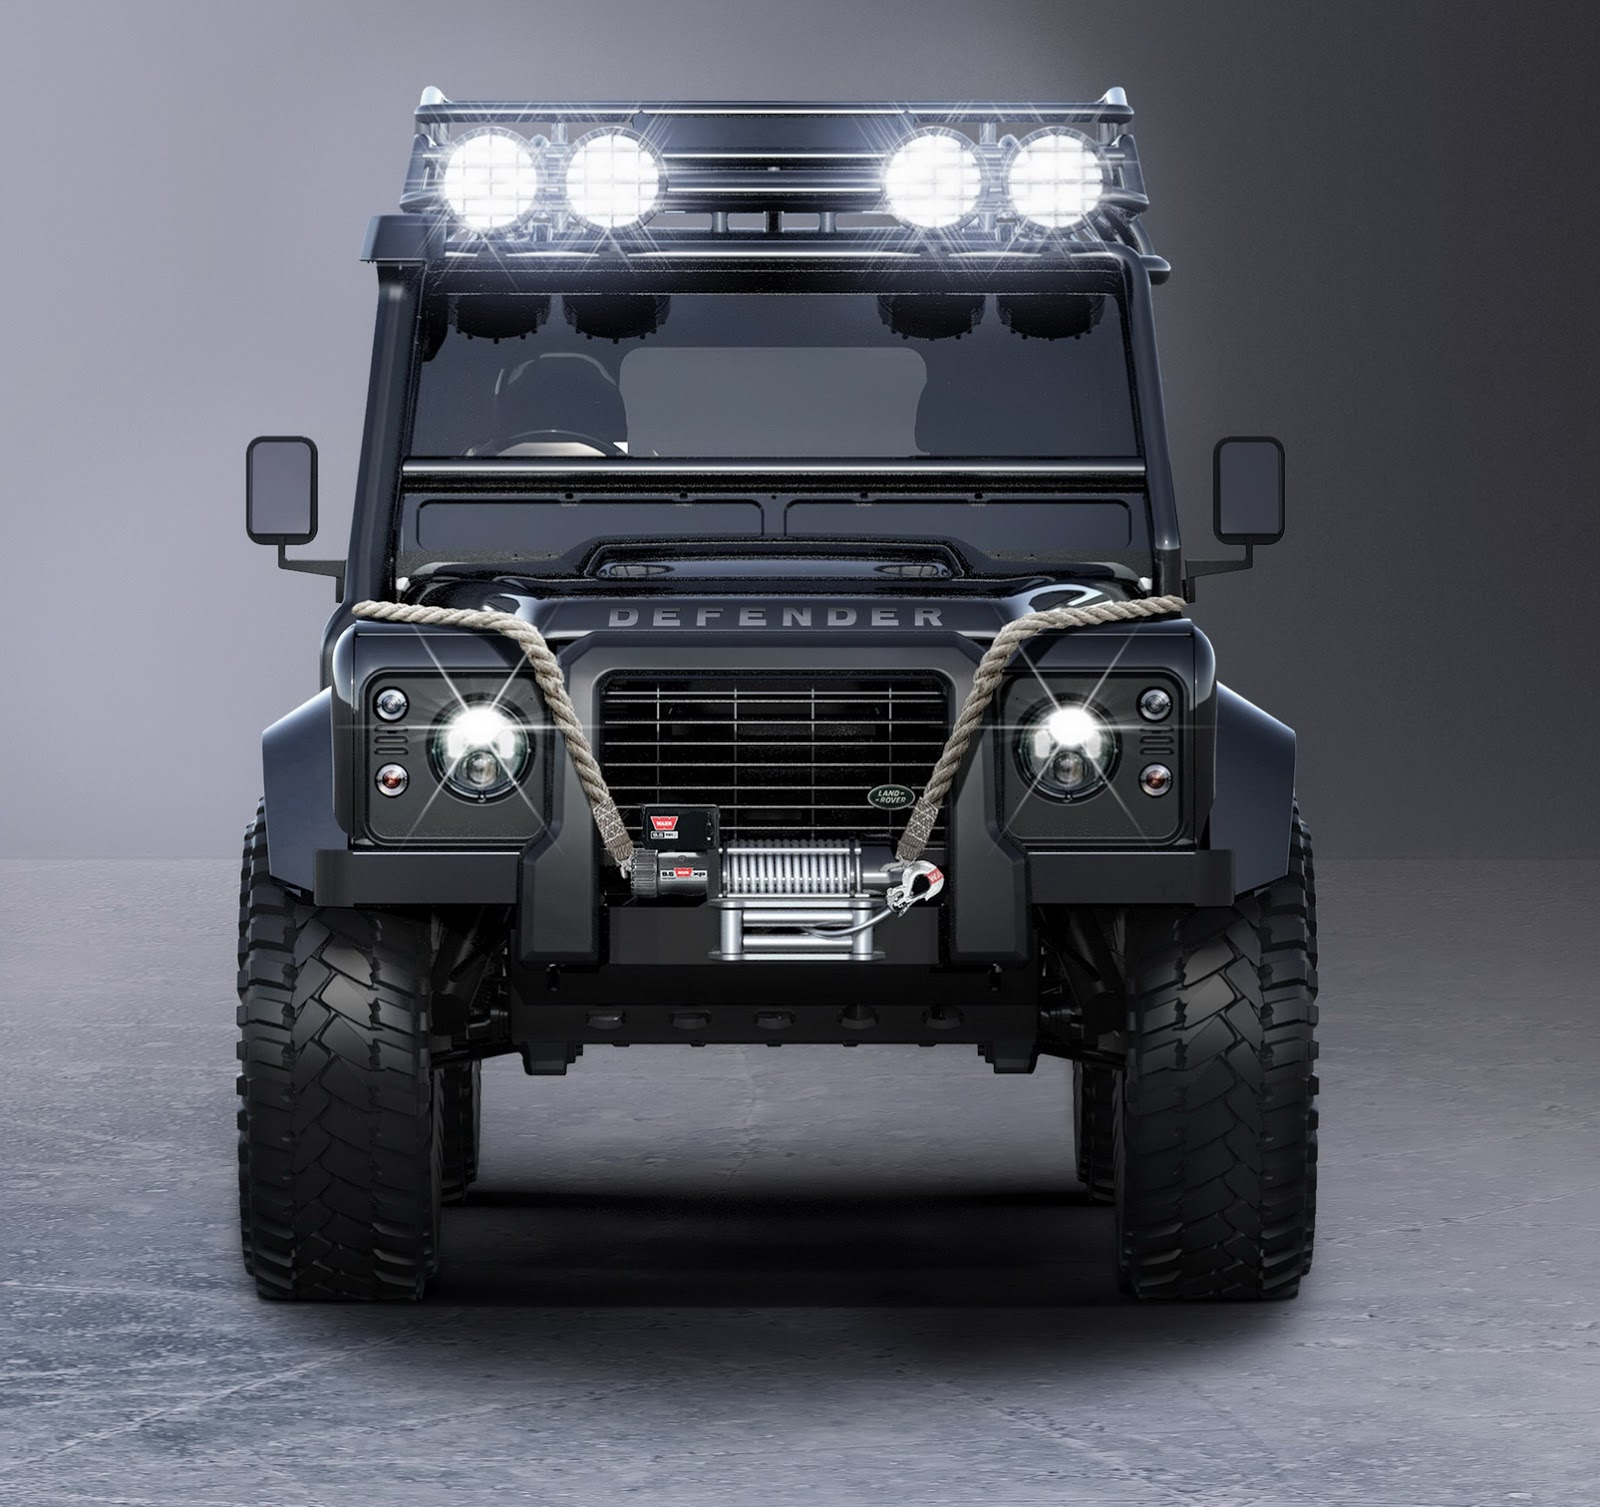 The Land Rover Defender In Spectre: One Last Ride